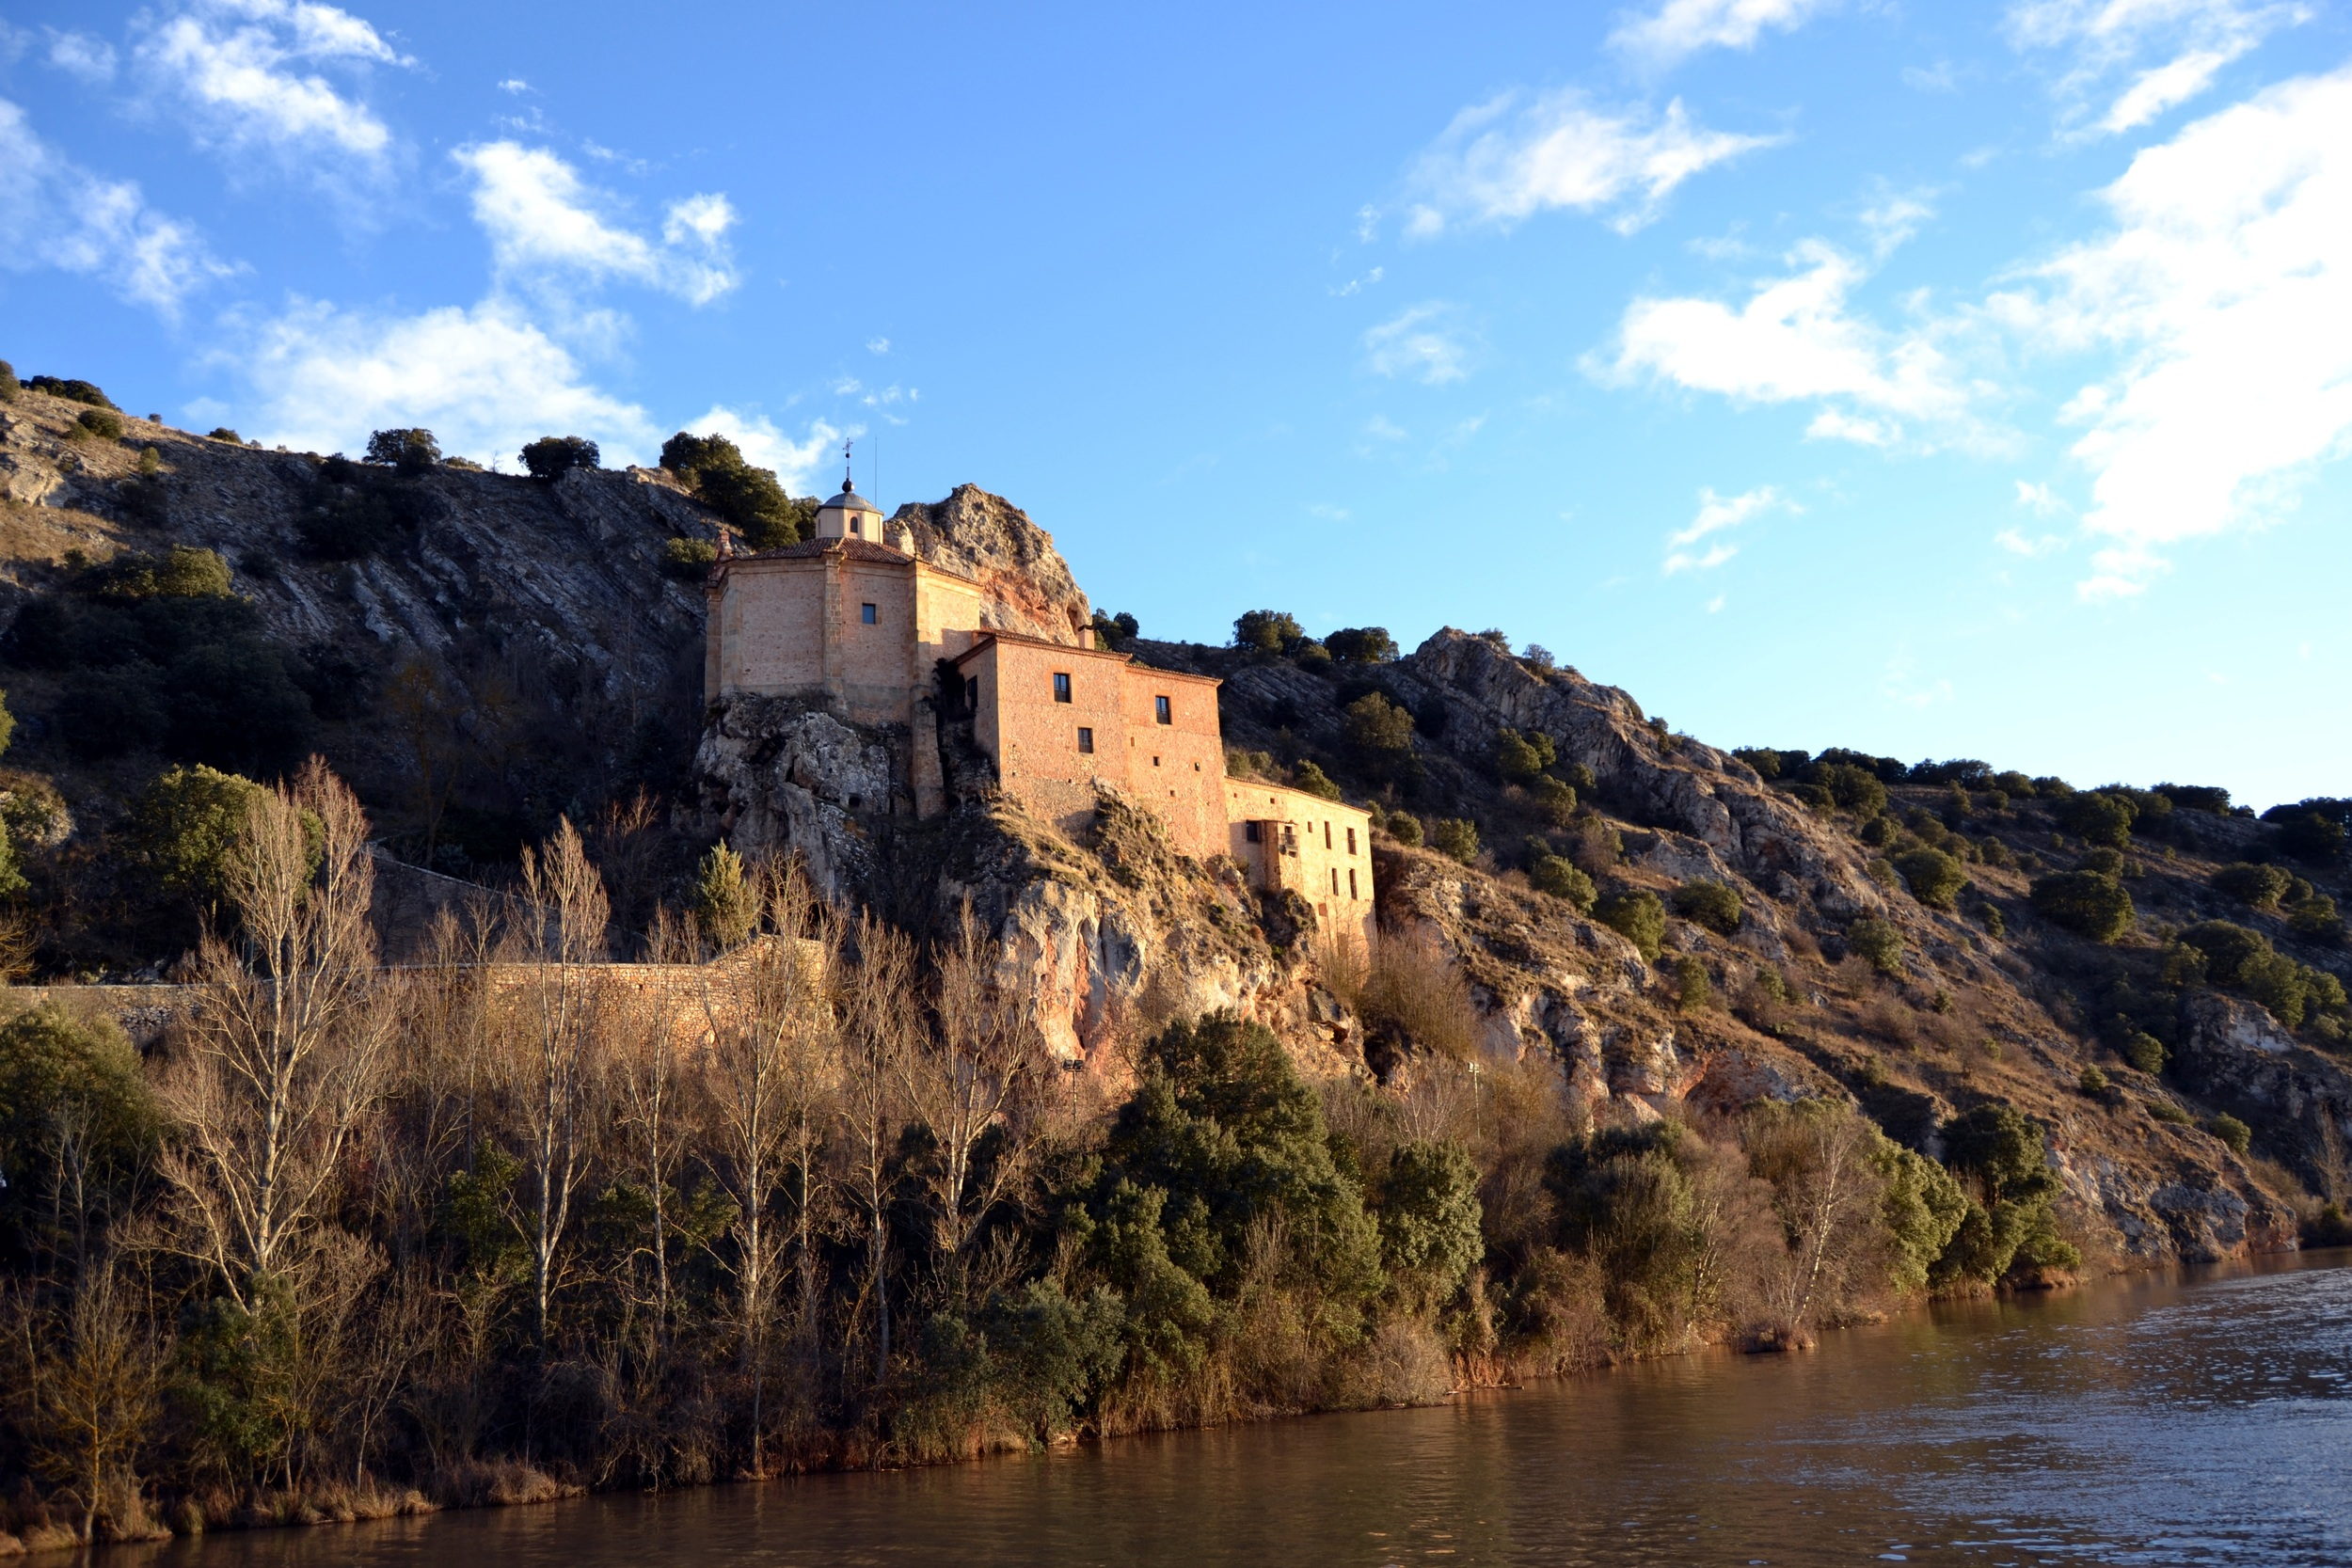 San Saturio of Soria is the emblematic hermitage built into the rocky walls on the Duero River, honored by visitors for its beauty and splendor with Baroque style architecture from the XVII century. Its early beginnings, belonging to a devout hermit that lived in the cave in the rock walls, can still be seen today.